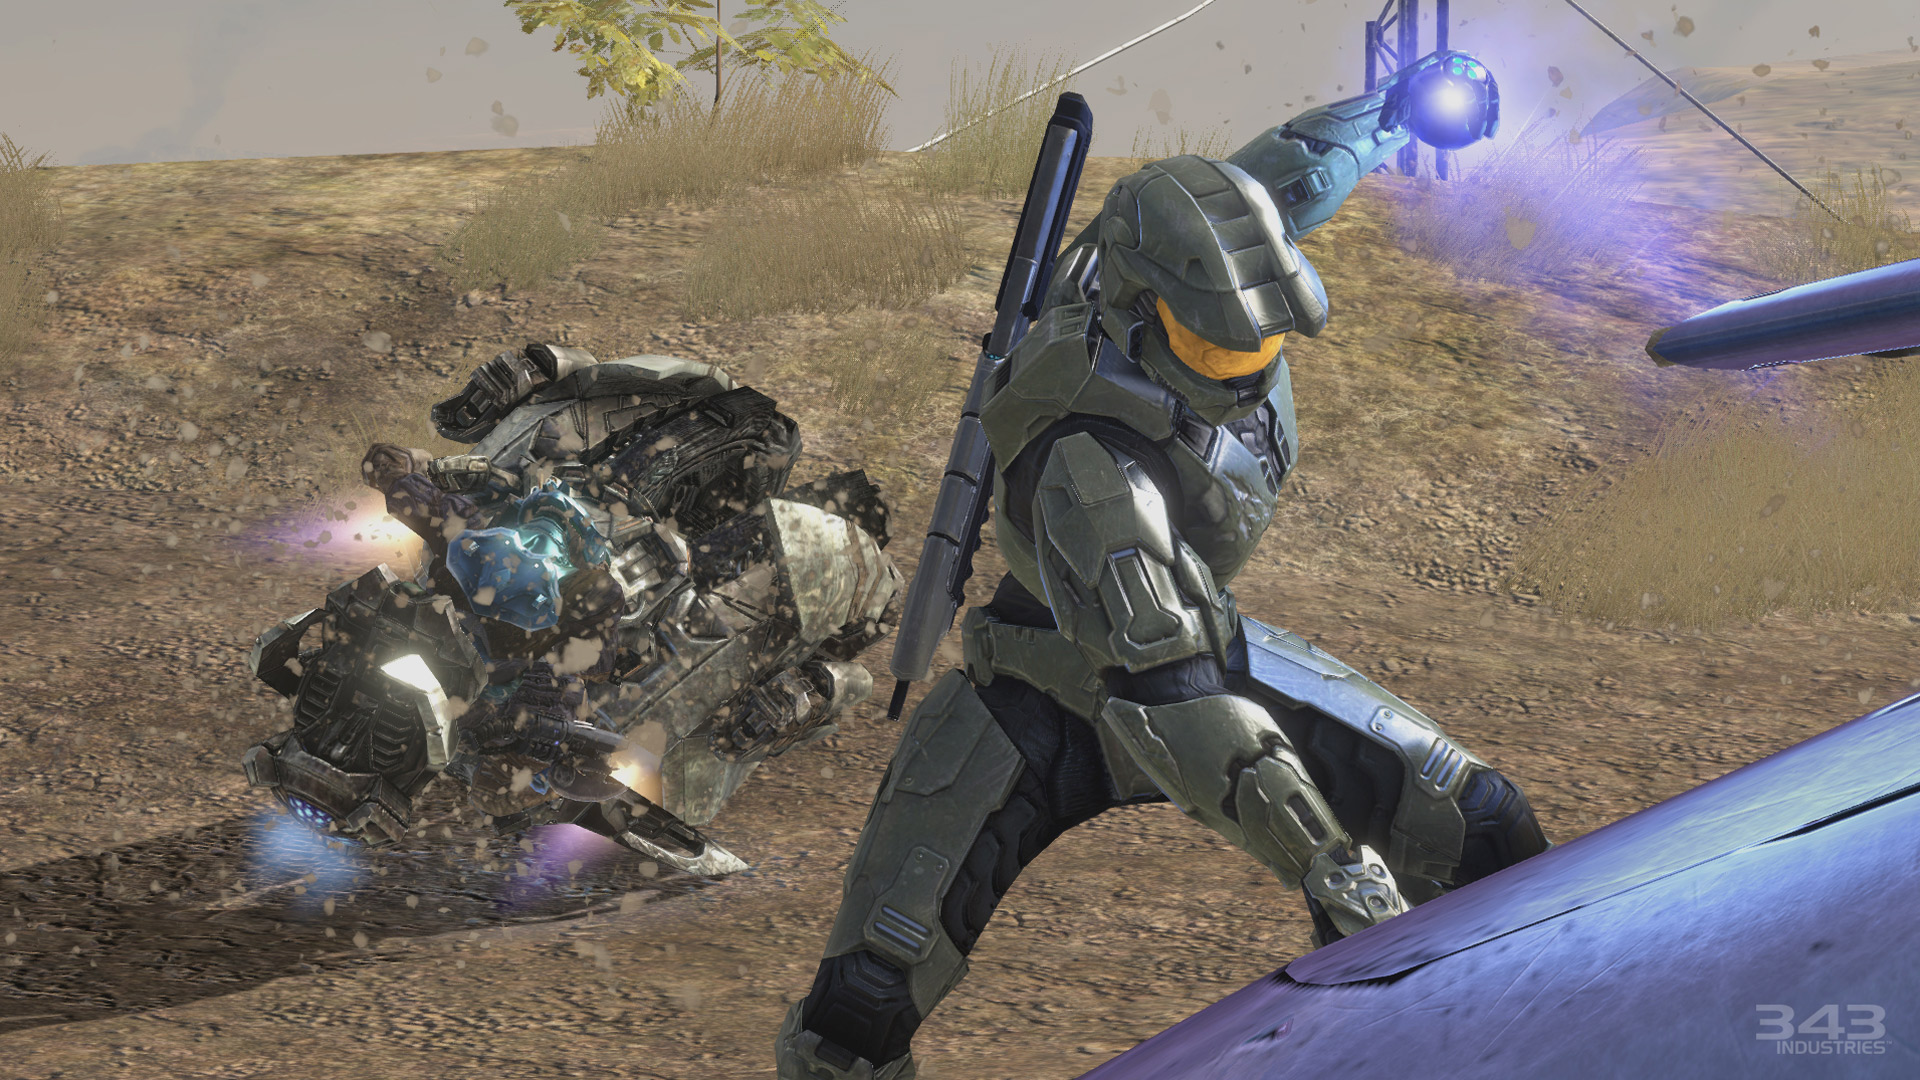 'Halo: The Master Chief Collection' review